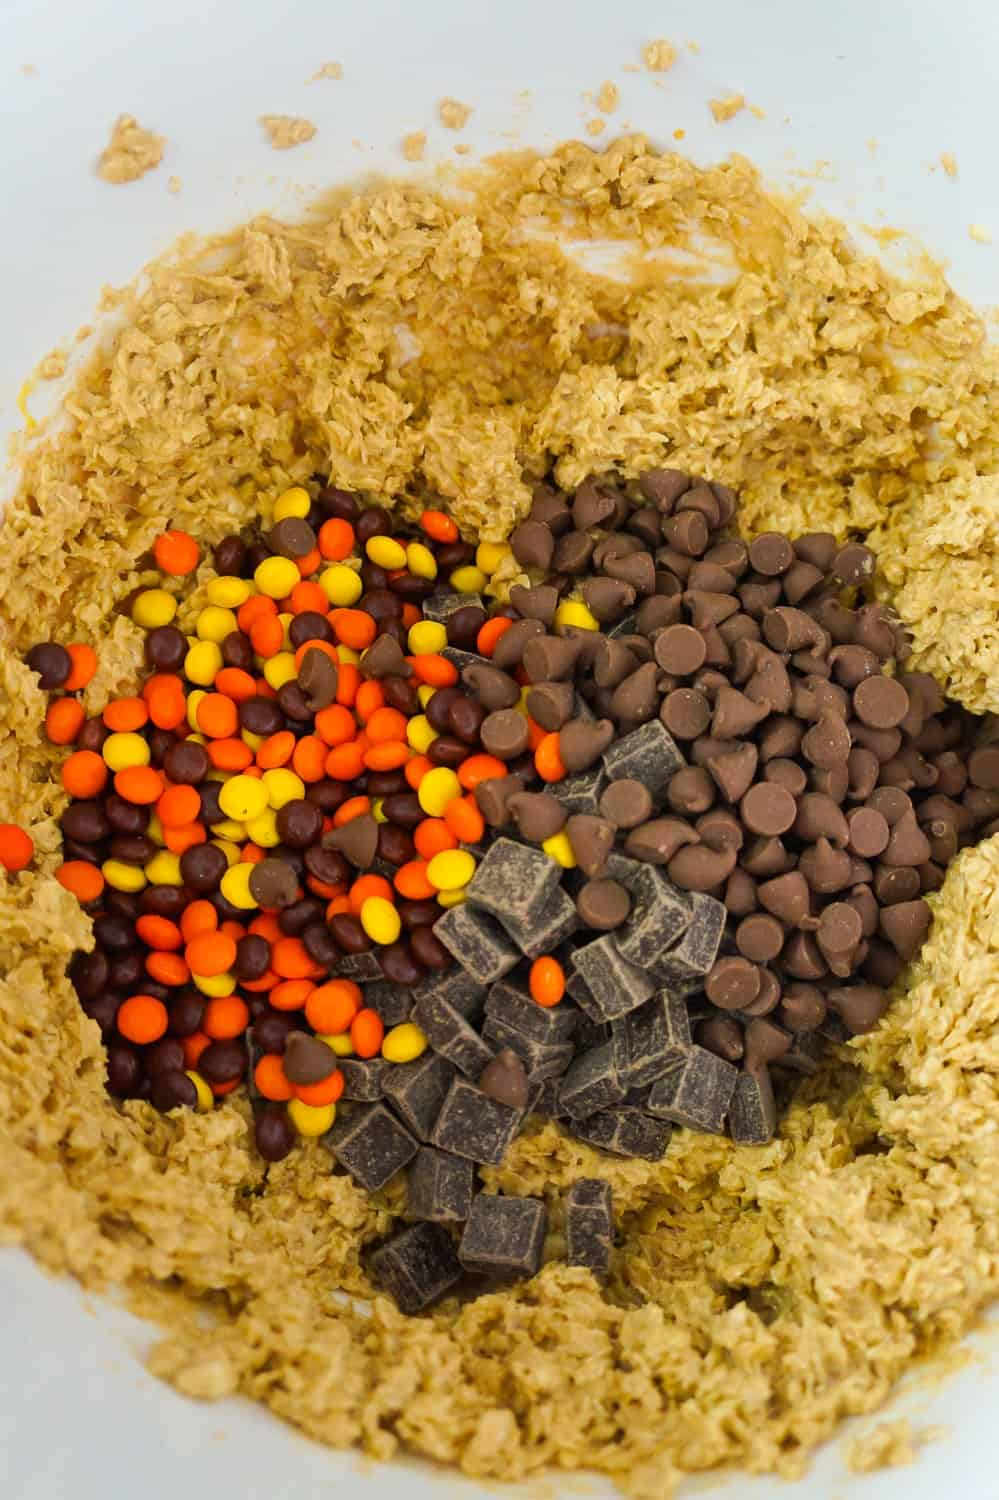 mini Reese's Pieces, milk chocolate chips and chocolate chunks on top of peanut butter oatmeal cookie dough